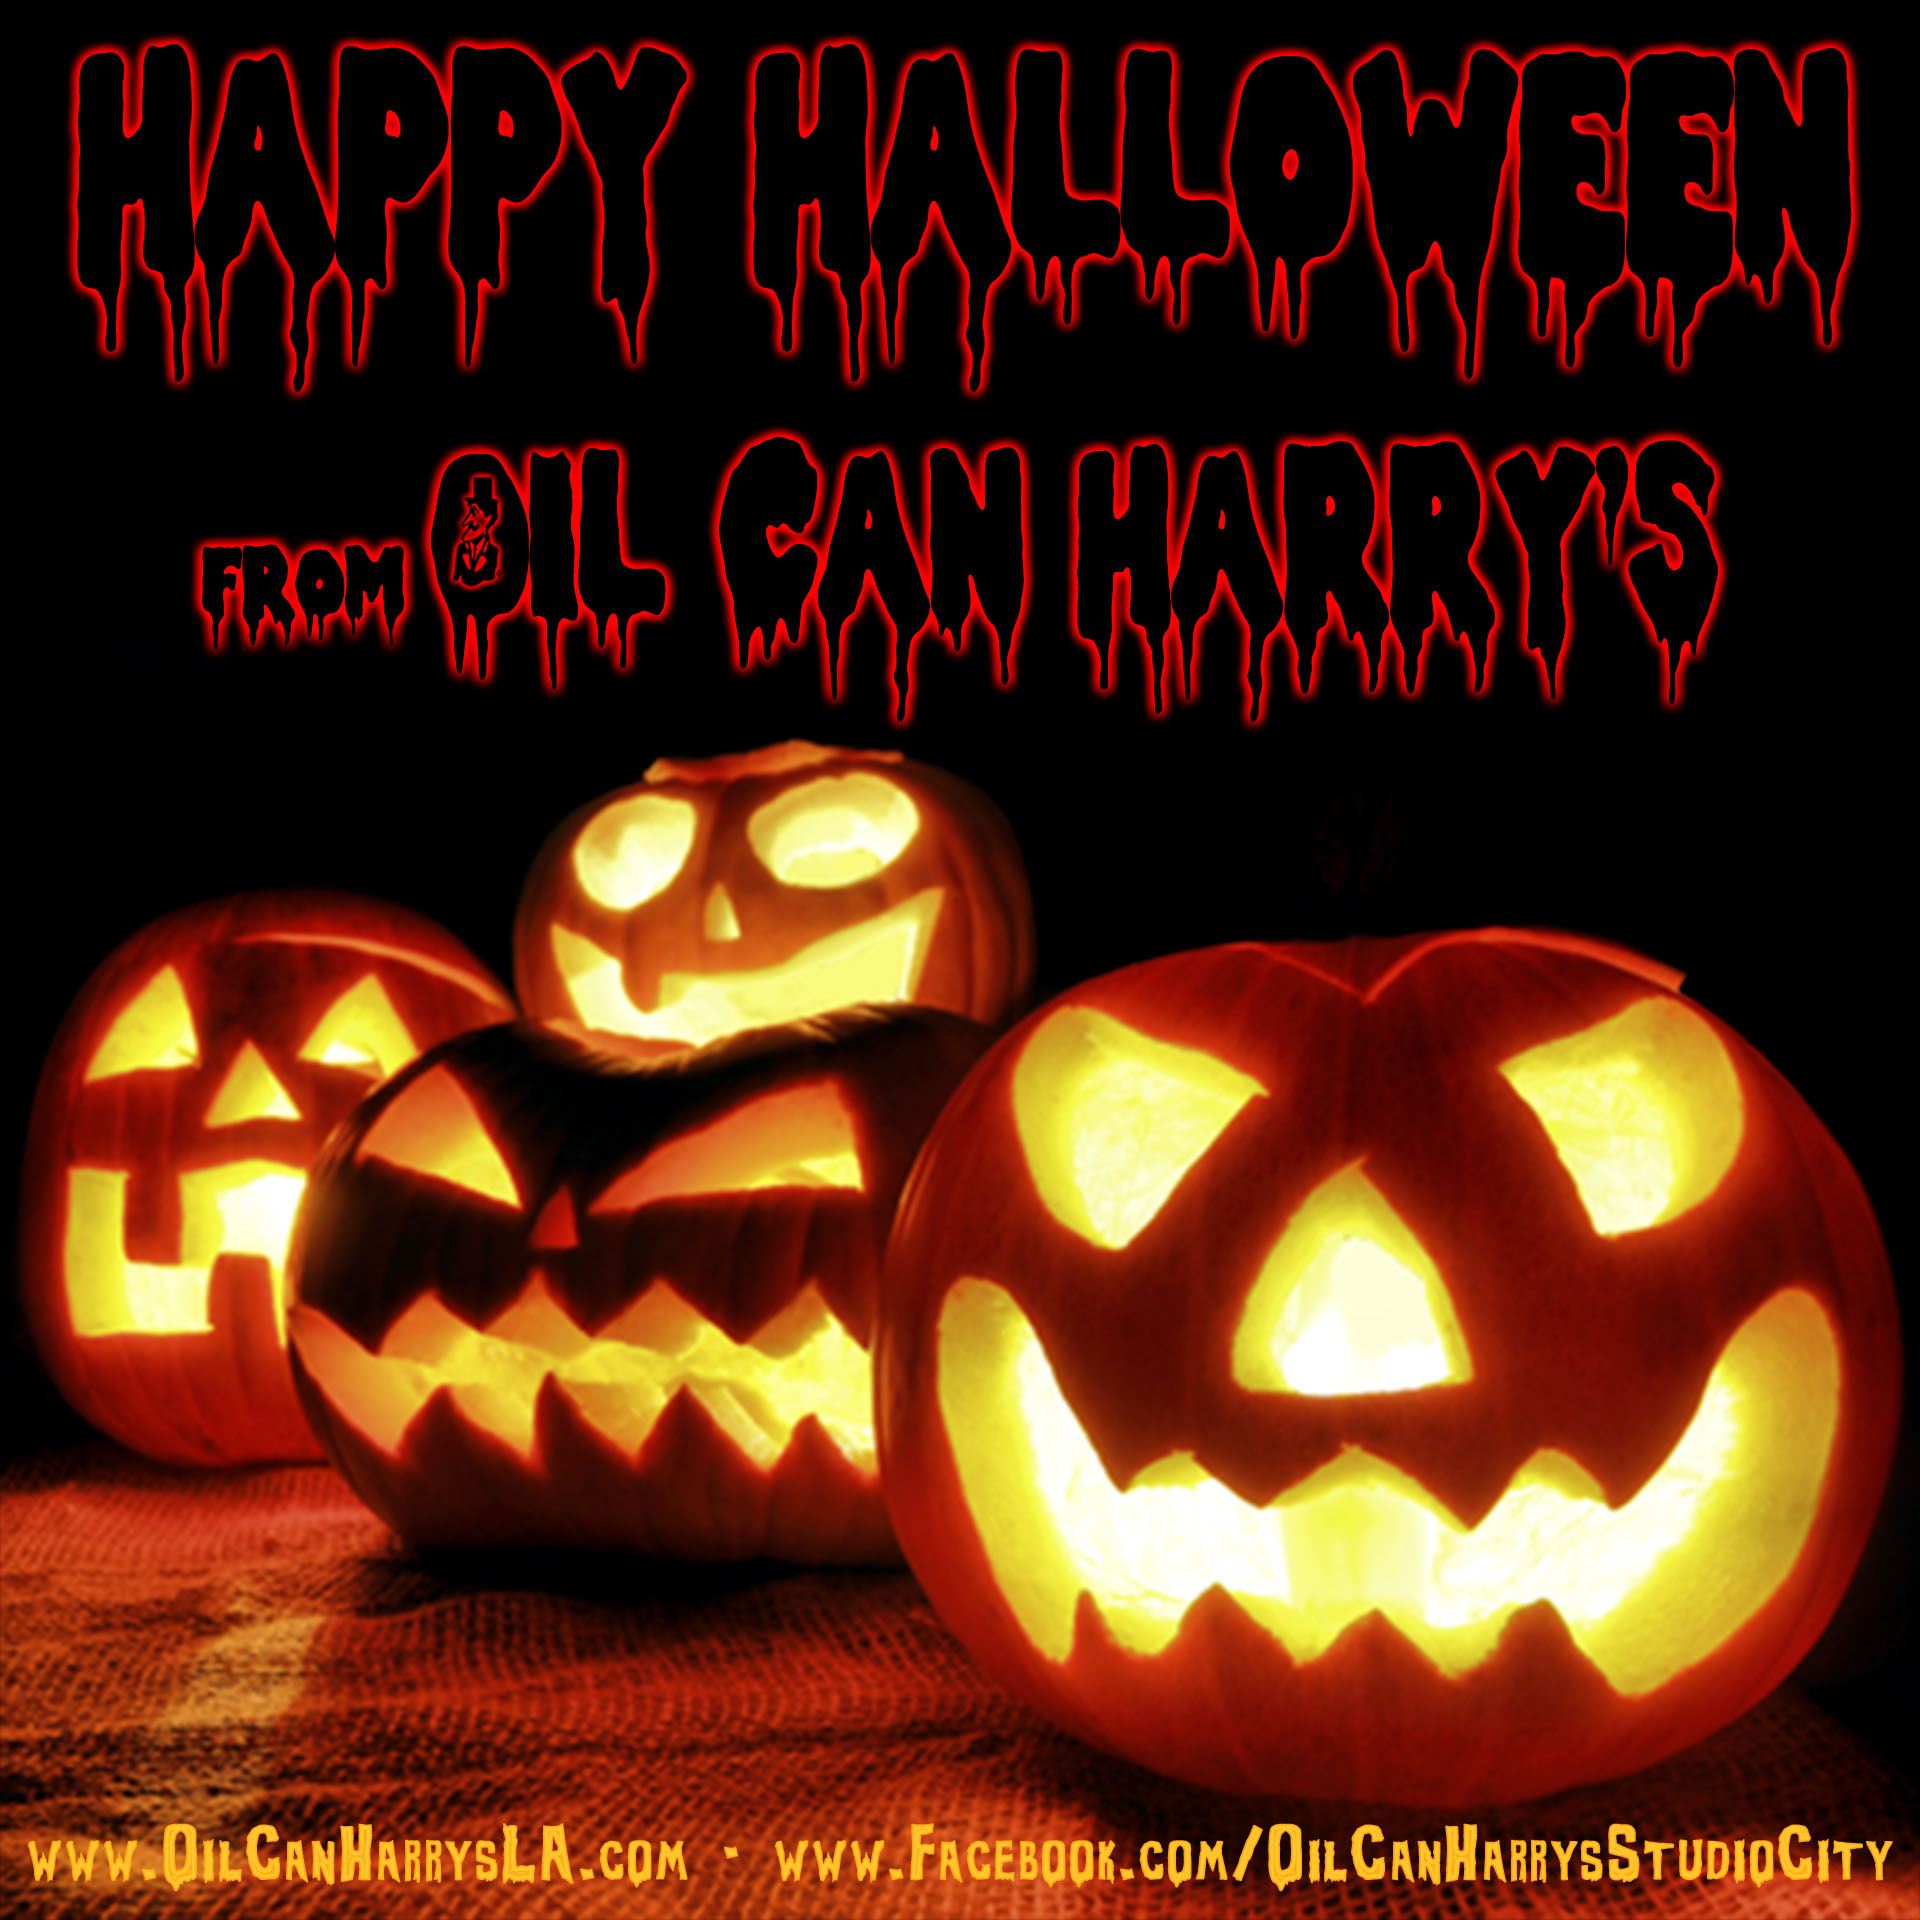 Happy Halloween from The Staff of Oil Can Harry's!